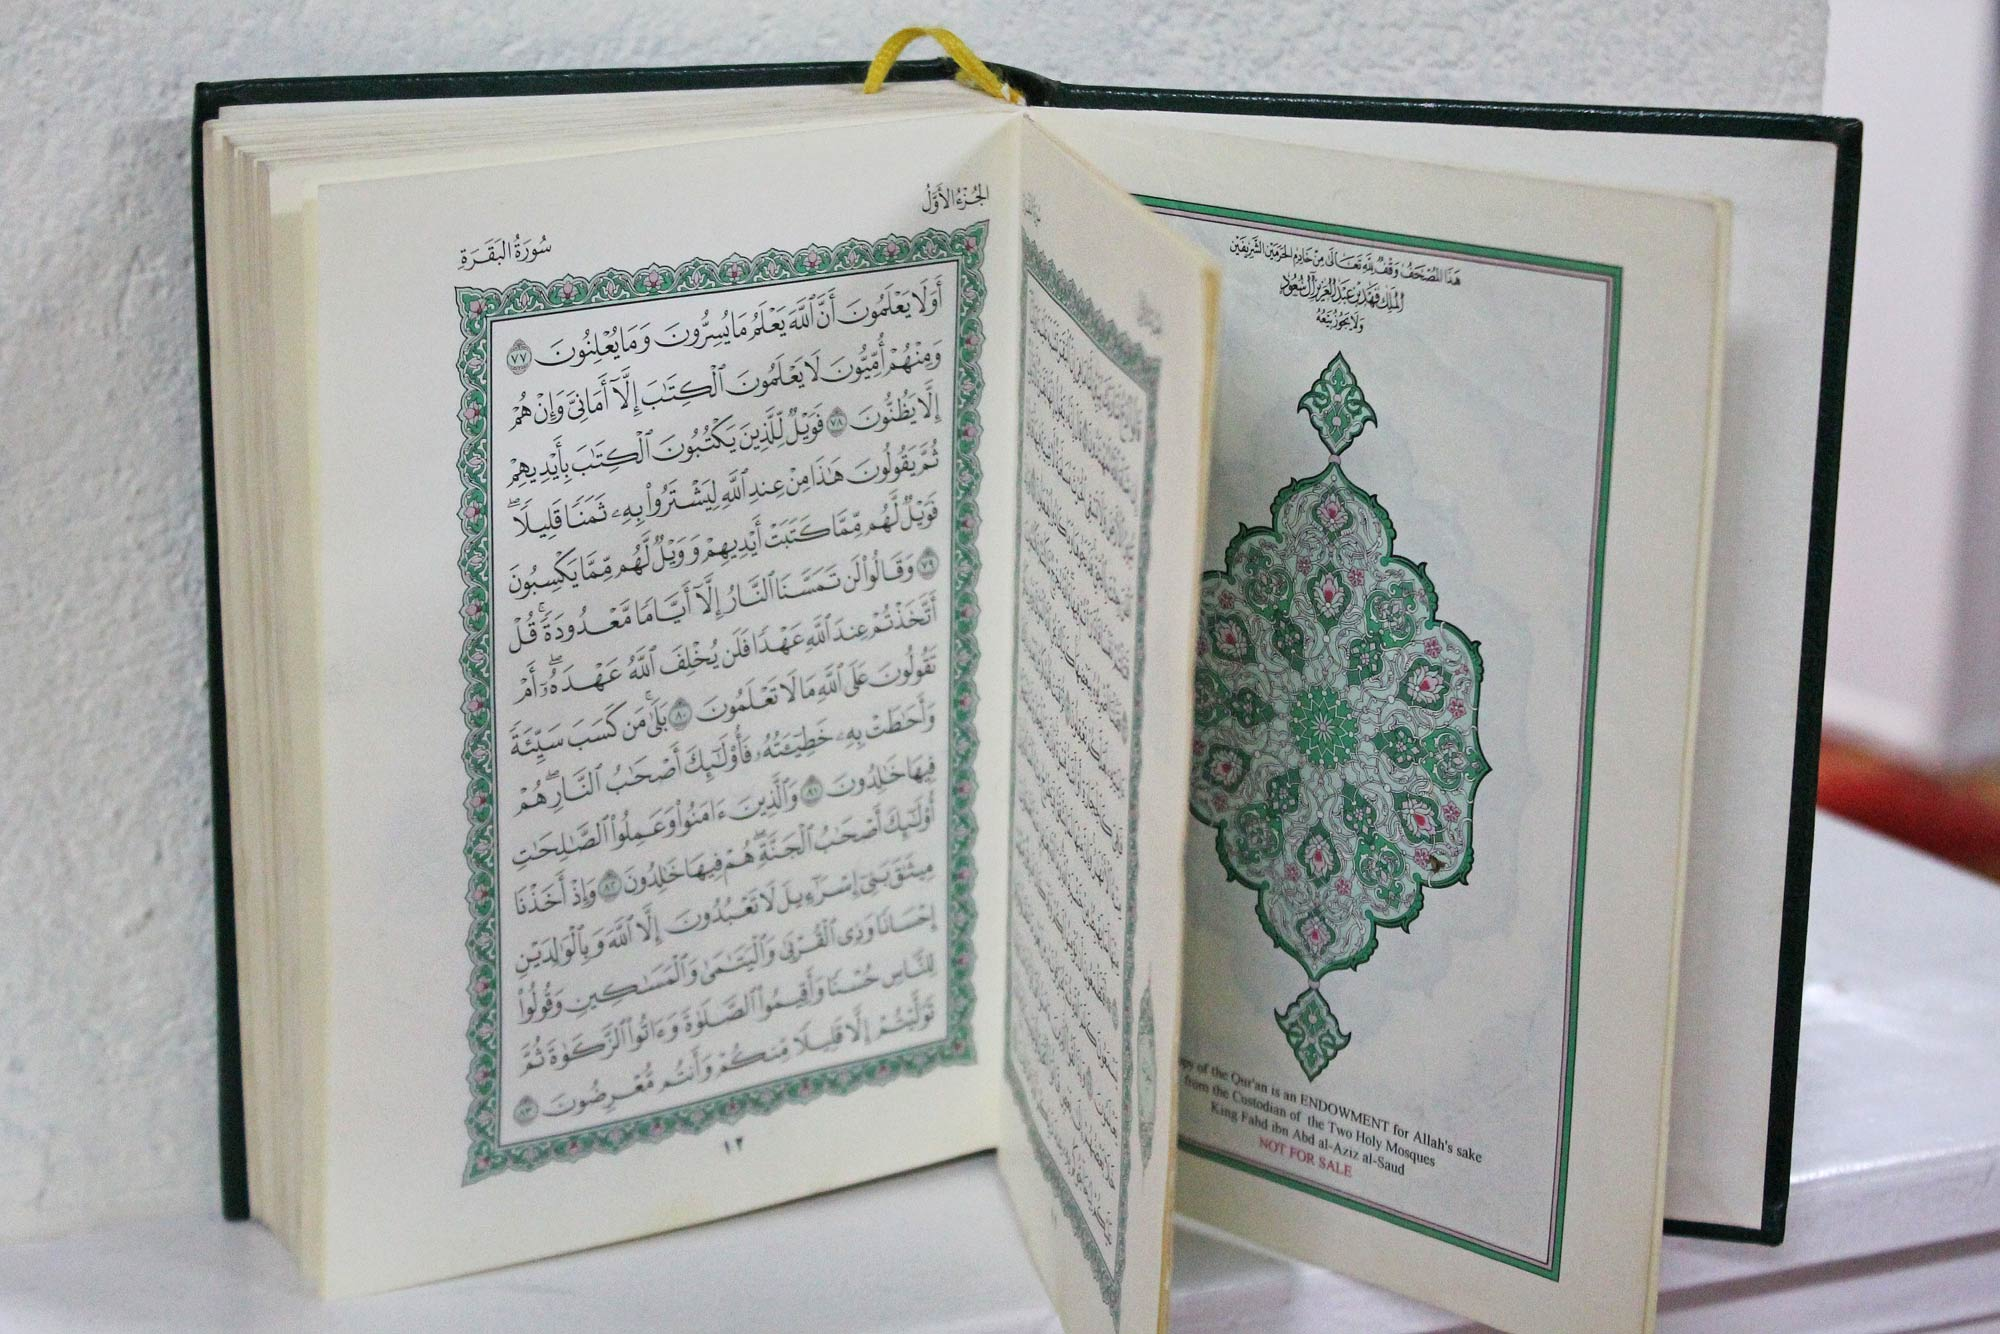 A Quran rests in an underground mosque in Athens, Greece. (Photo by Priyadarshini Sen/GroundTruth)